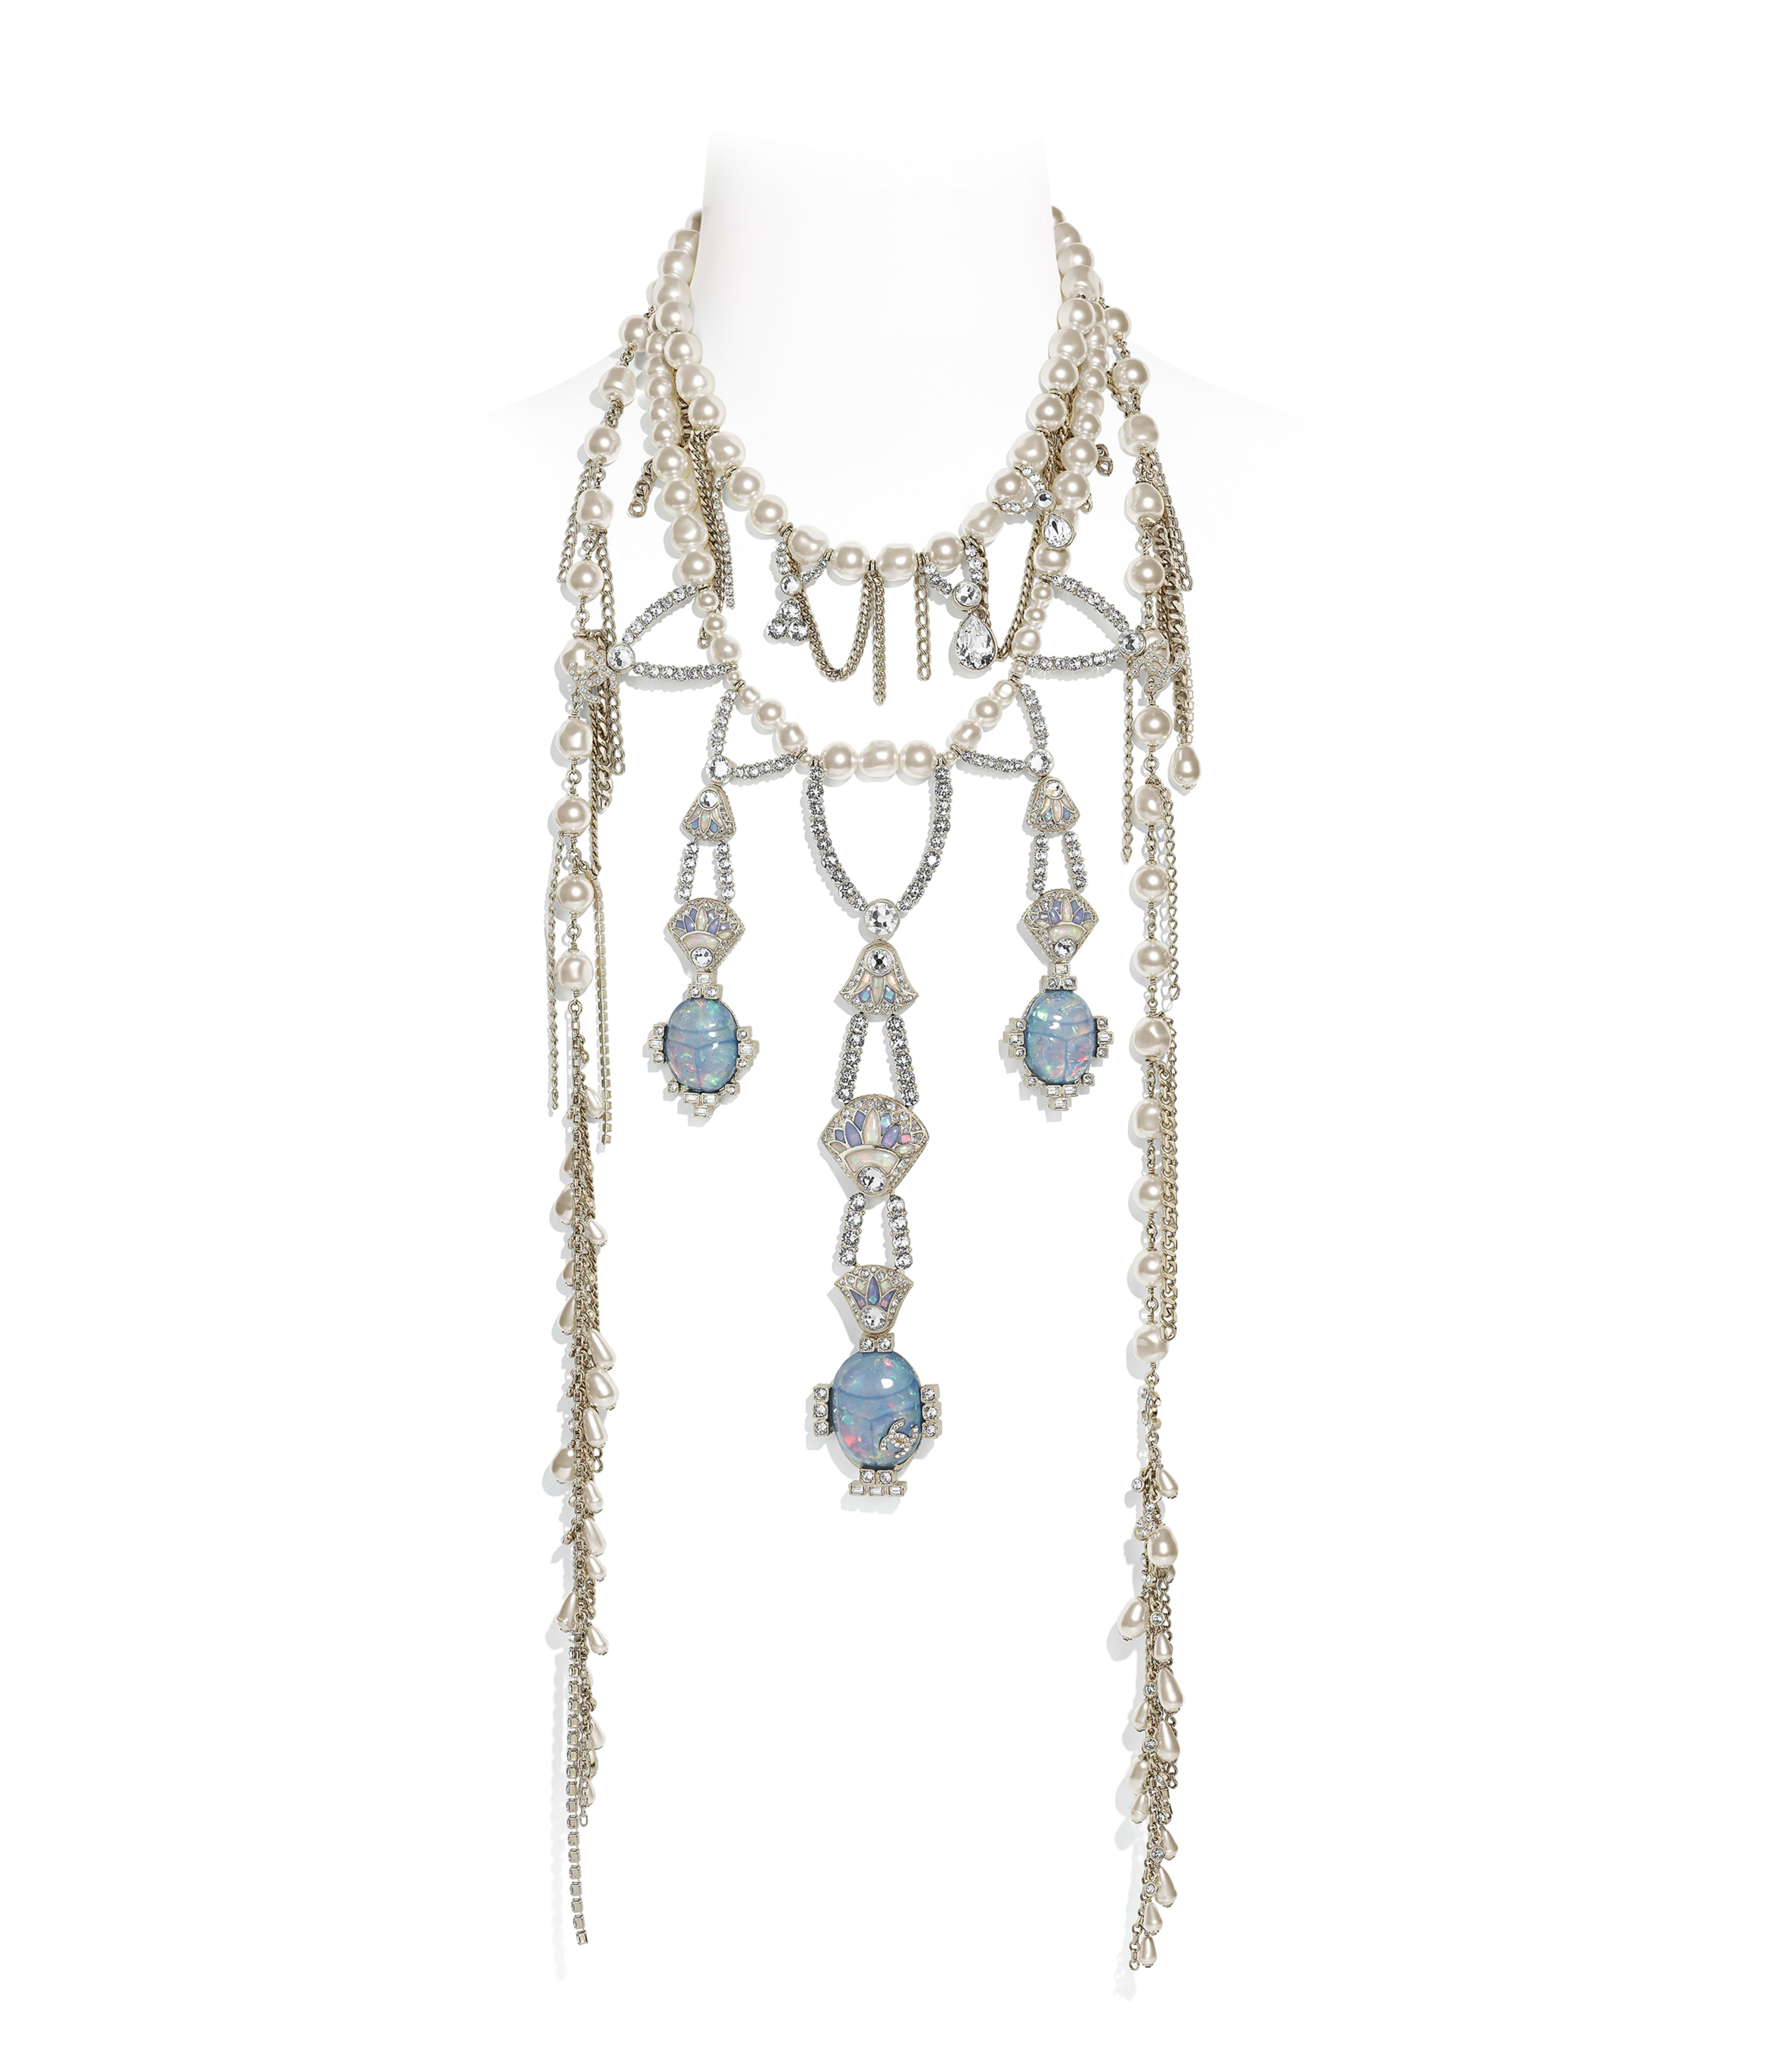 41d7009a Necklace Metal, Glass Pearls, Strass & Resin, Gold, Pearly White & Crystal  Ref. AB2066Y47768Z9204